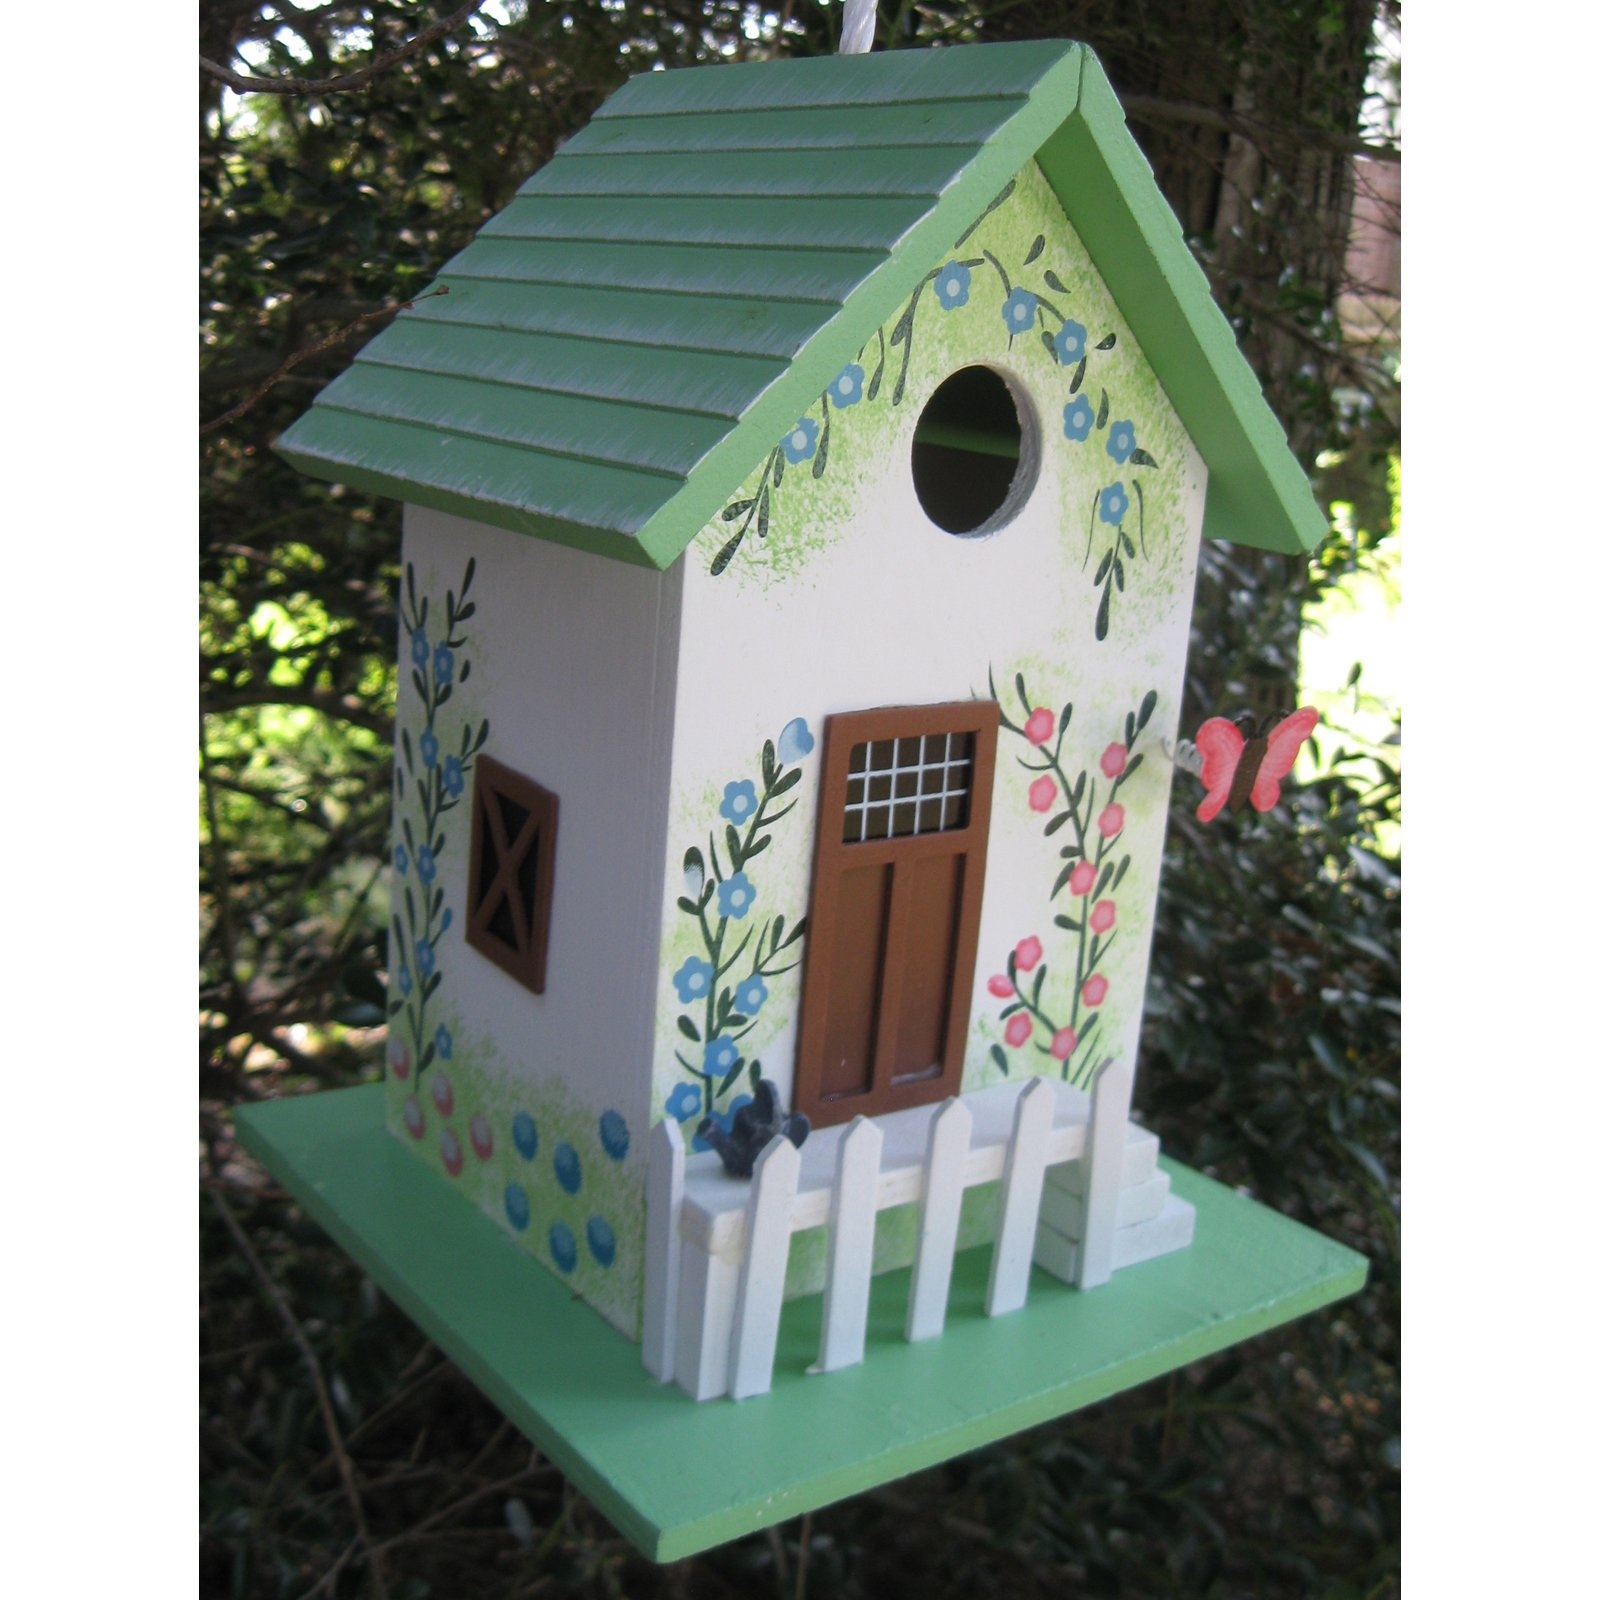 Home Bazaar Butterfly Cottage Birdhouse Green by Home Bazaar Inc.